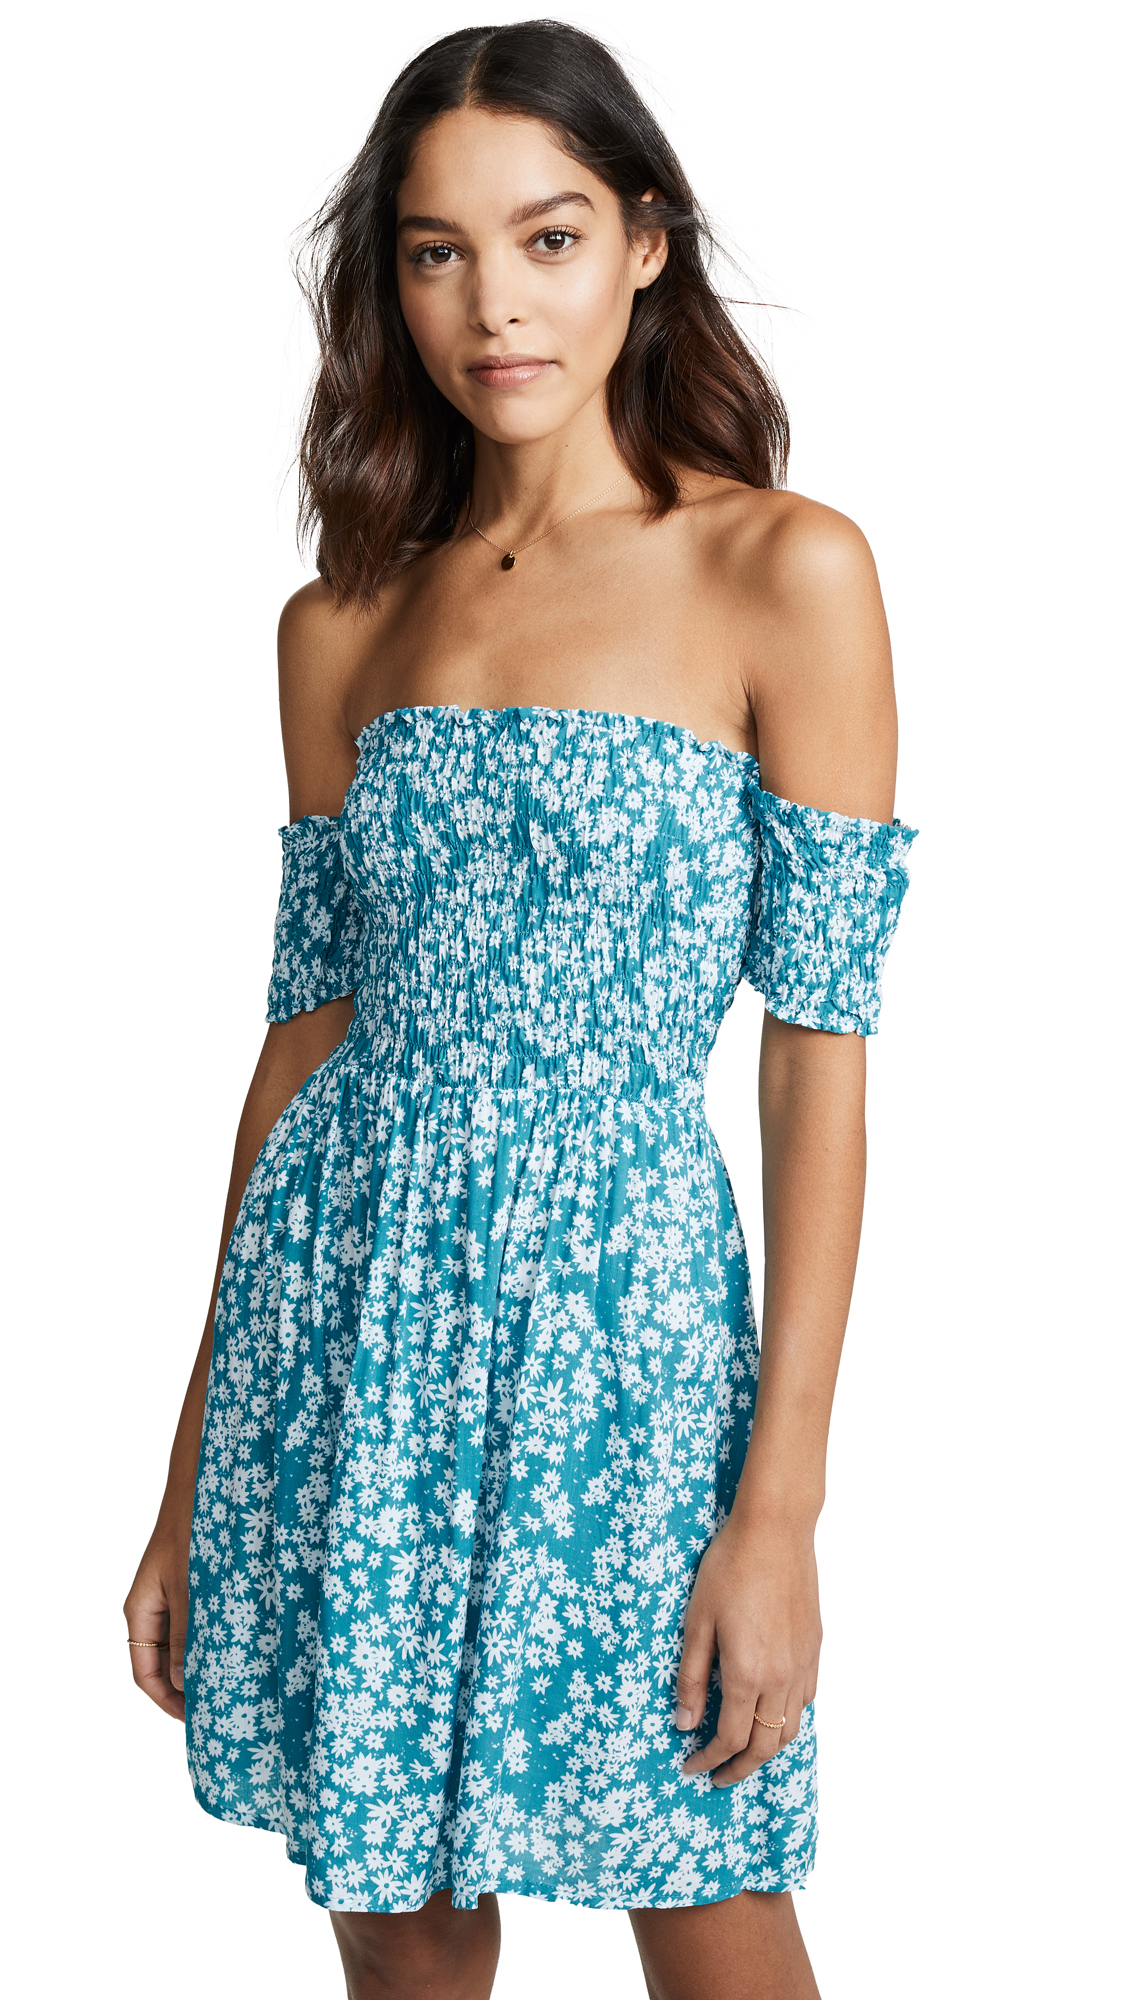 TIARE HAWAII Smocked Mini Dress in Scattered Daisy Tosca